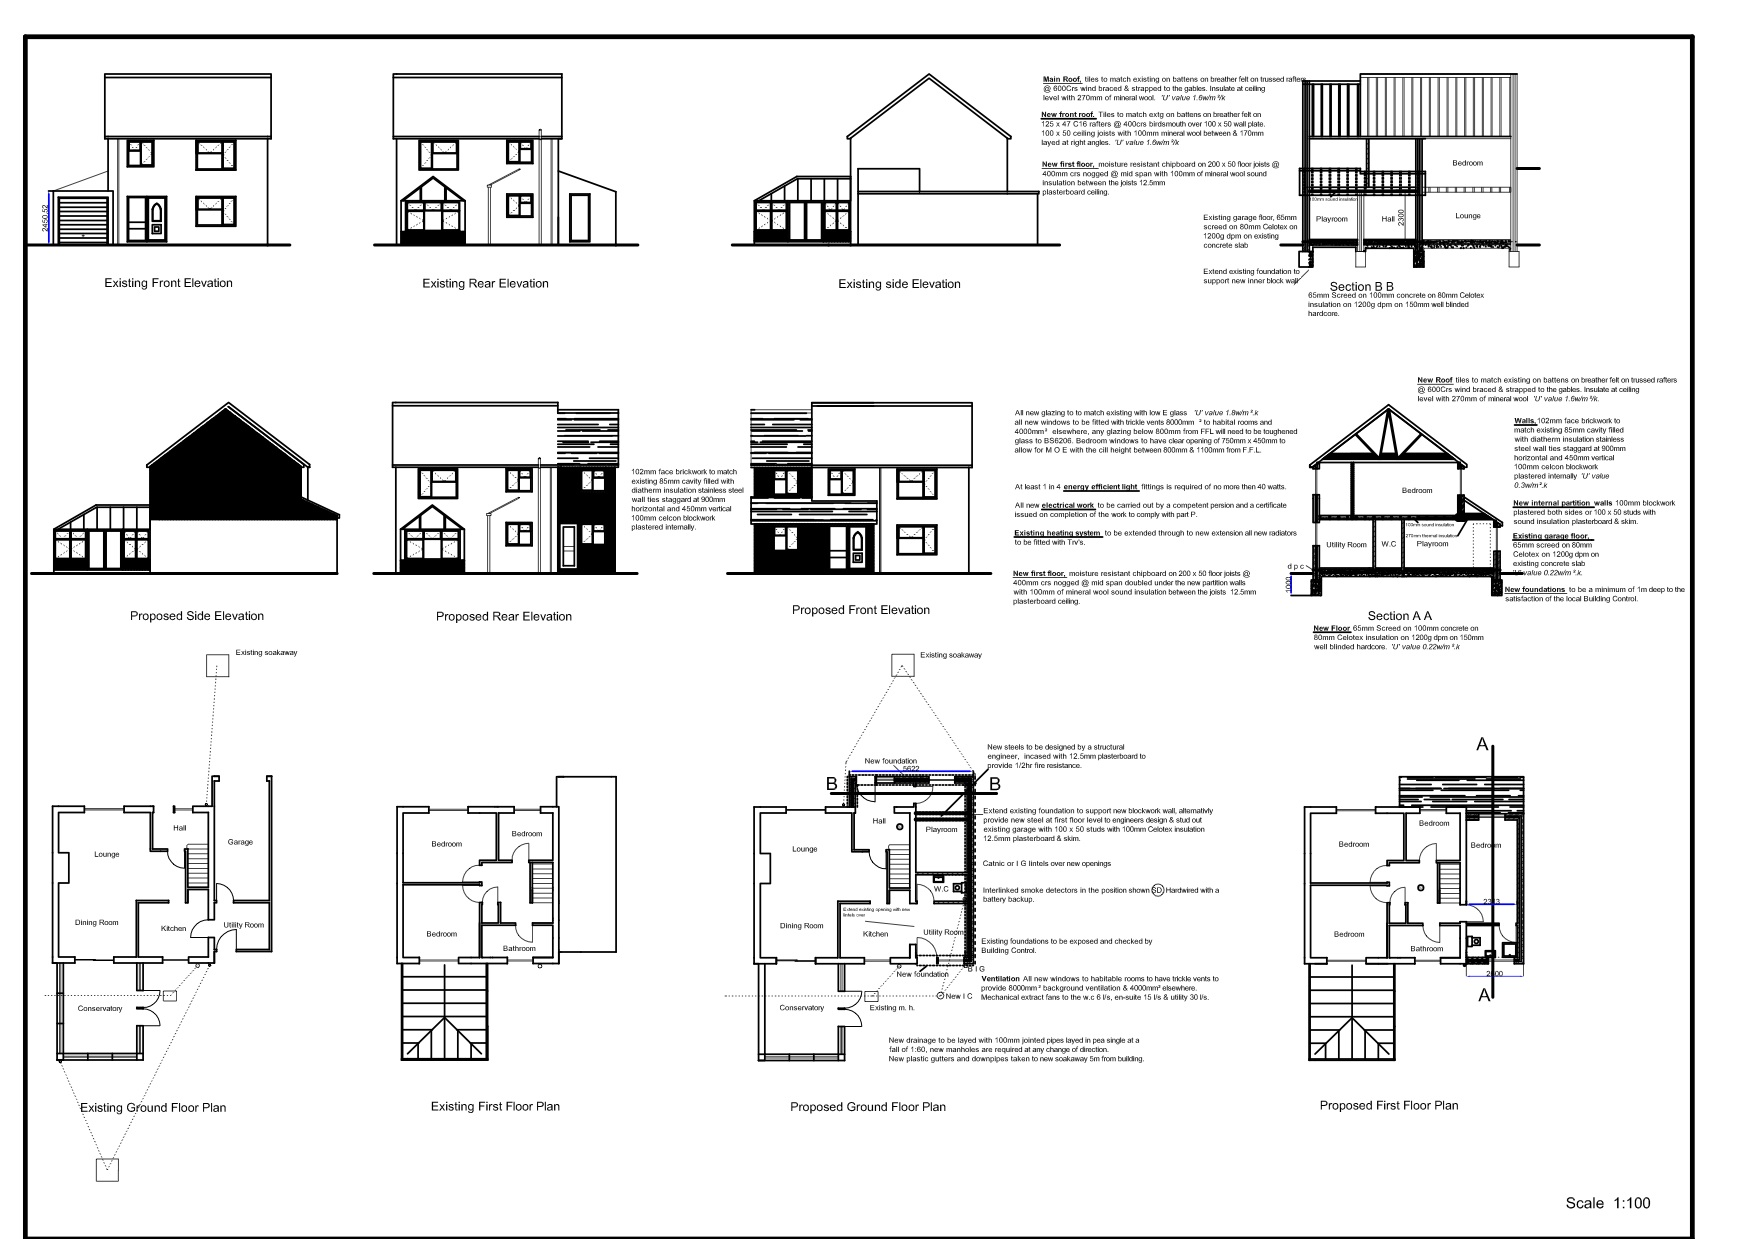 Ah building design sample plans Building plans